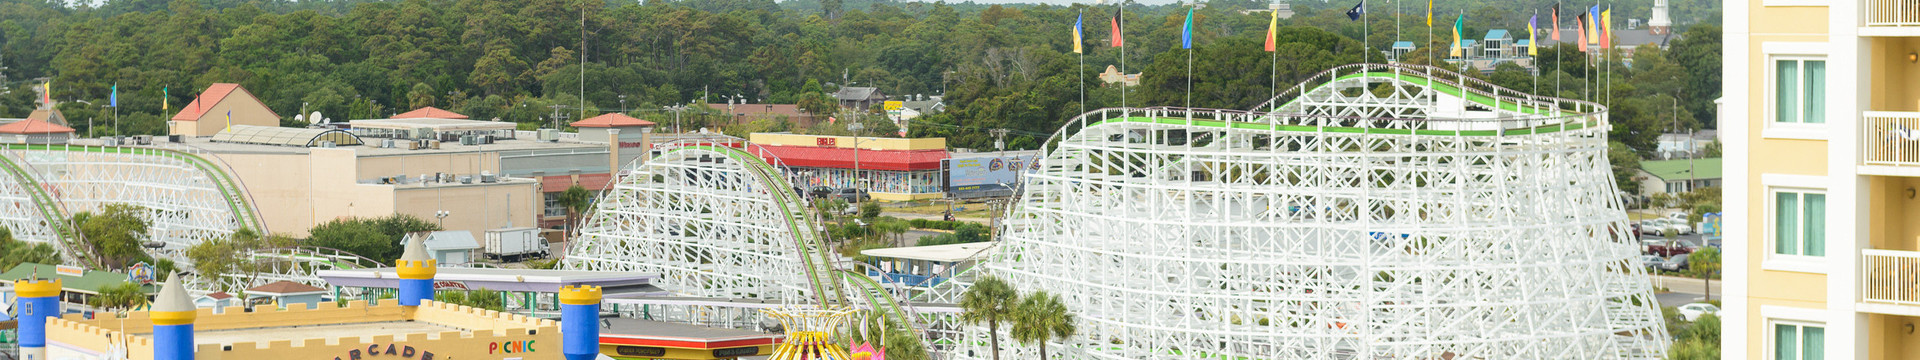 Amusement Park View Room at our Myrtle Beach Resort | Family Kingdom Amusement Park